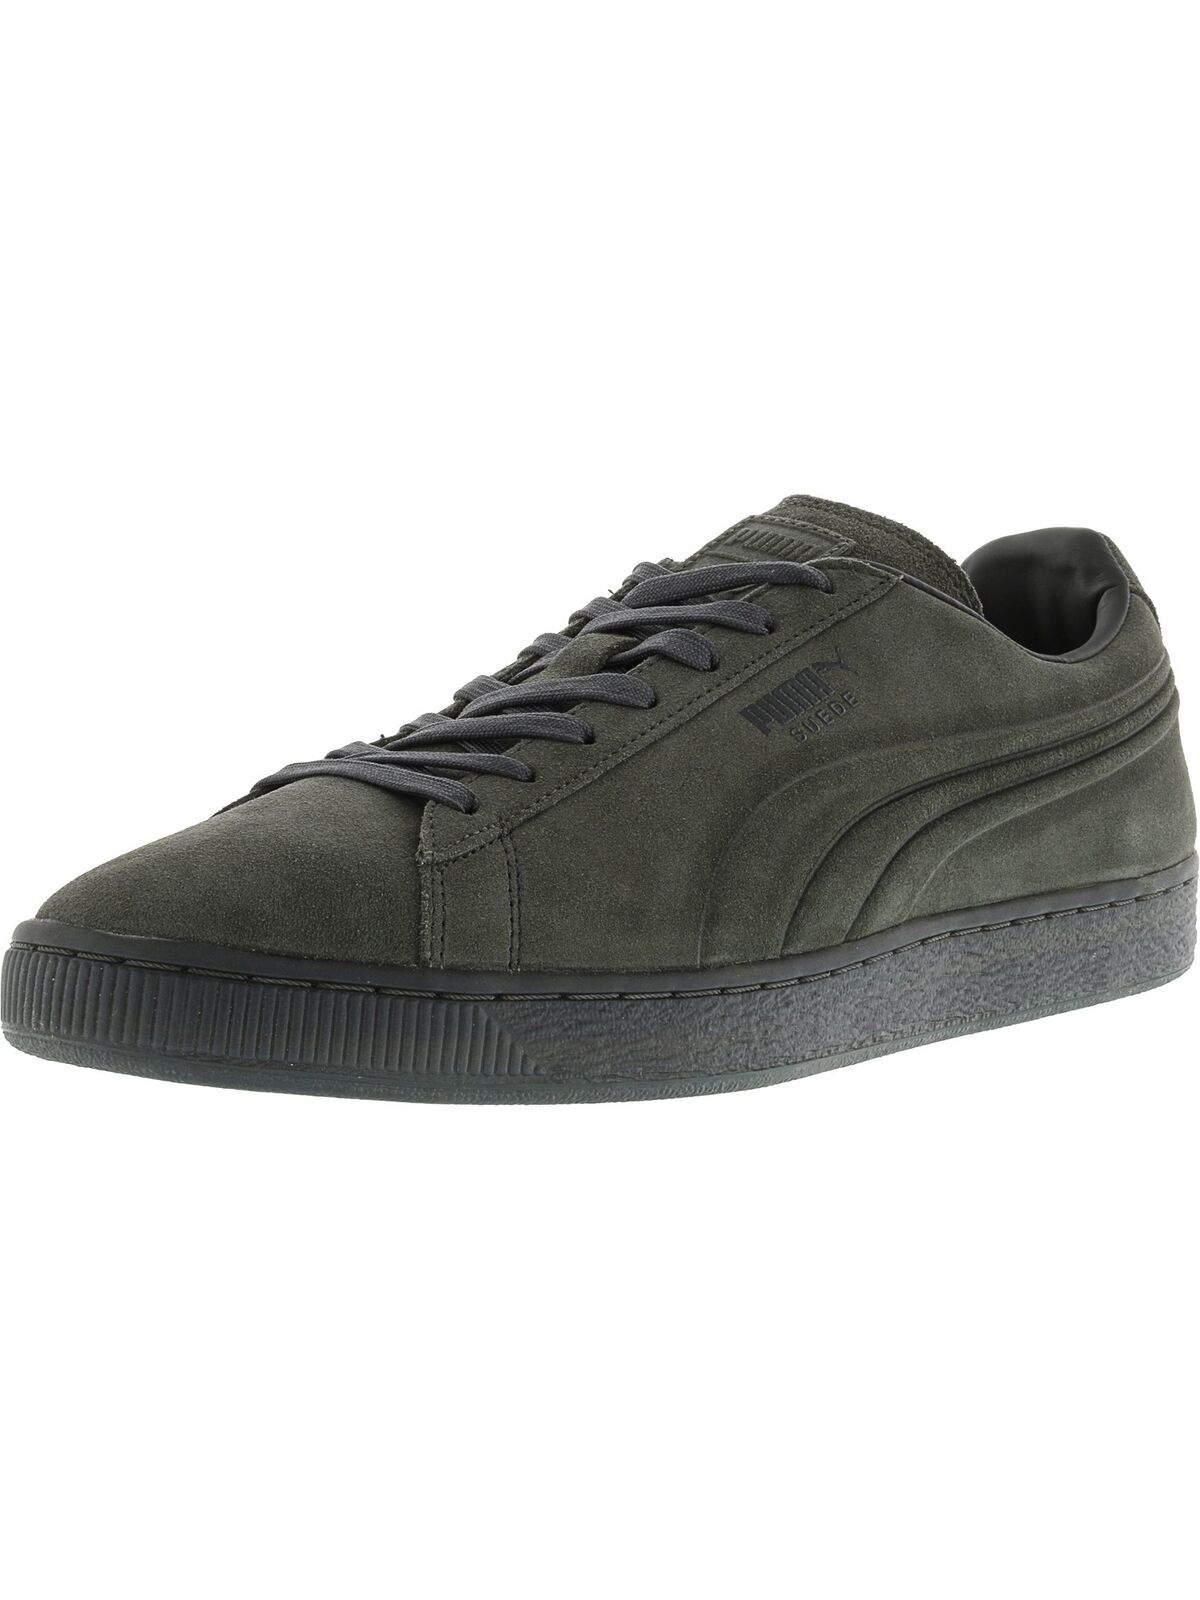 Puma Men's Suede Emboss Iced Ankle-High Fashion Sneaker